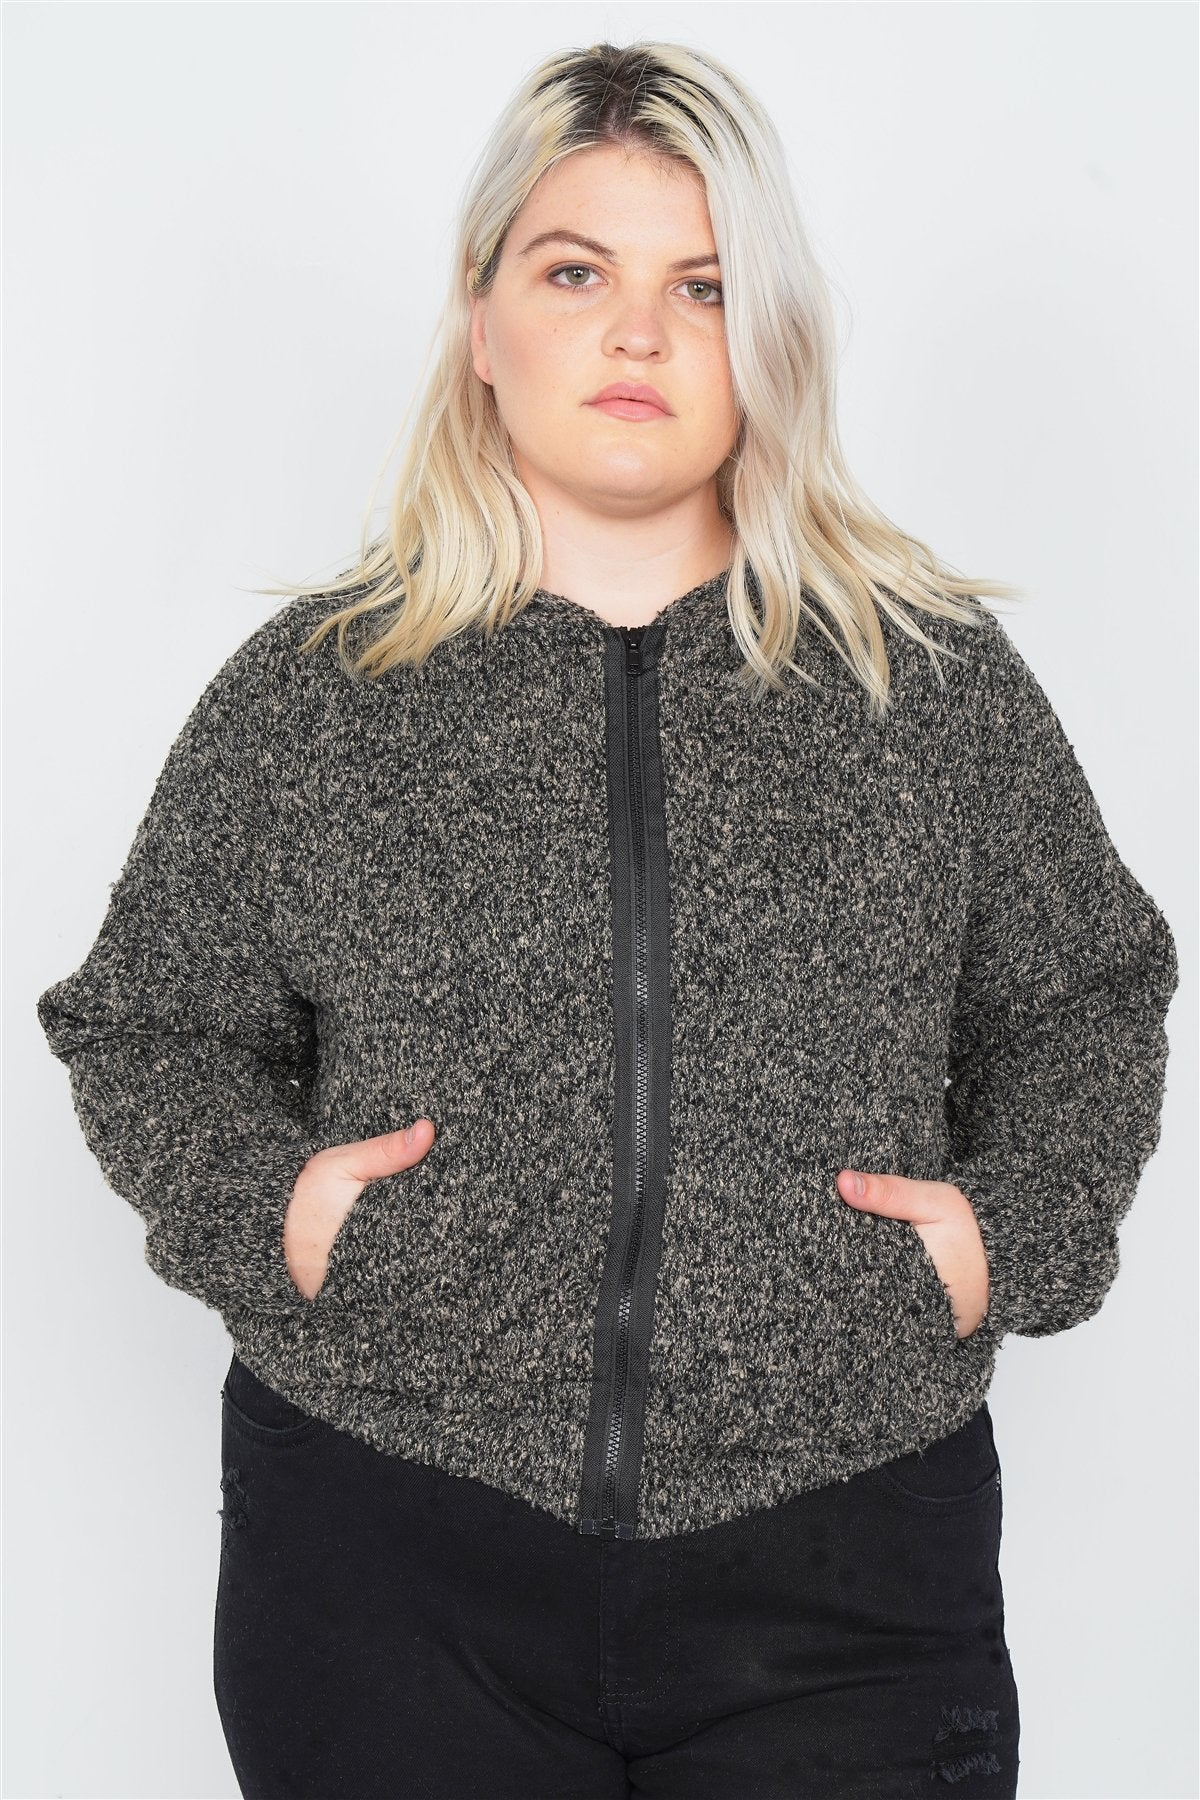 Plus Size Heather Charcoal Athletic Full Zip Hoodie Sweater - CYFASHION